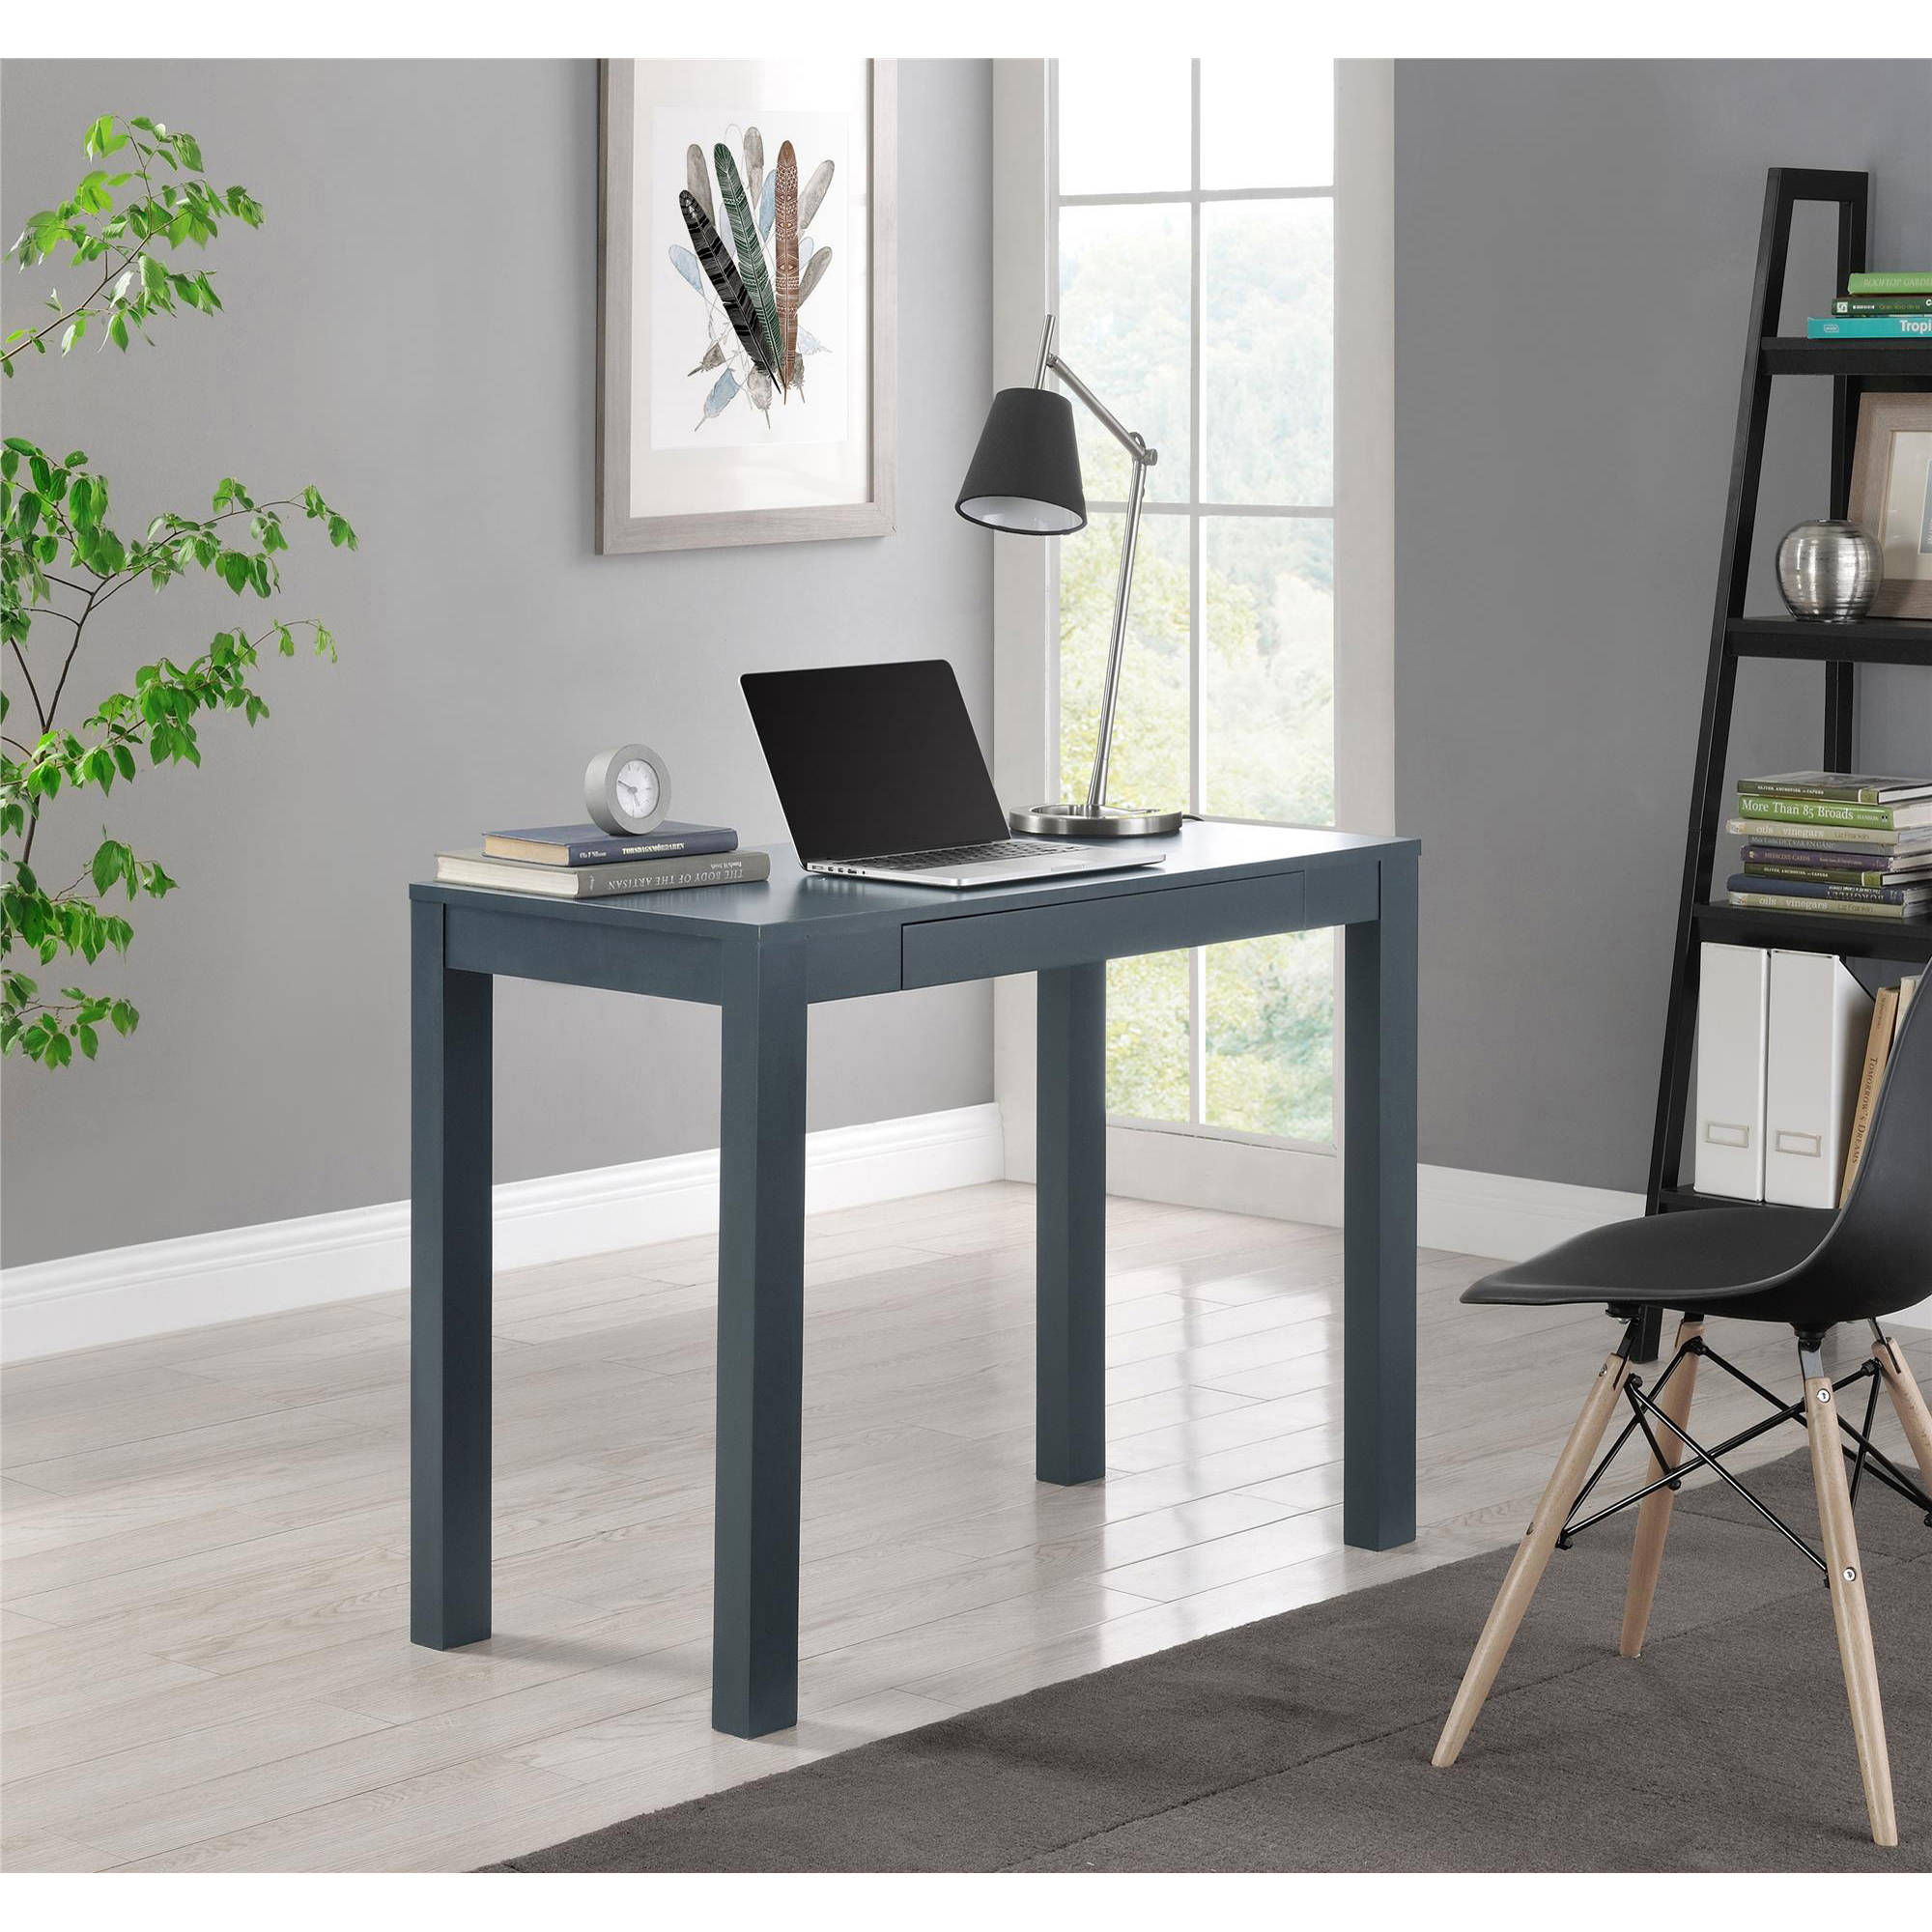 Ameriwood Home Parsons Desk with Drawer, Multiple Colors by Ameriwood Home